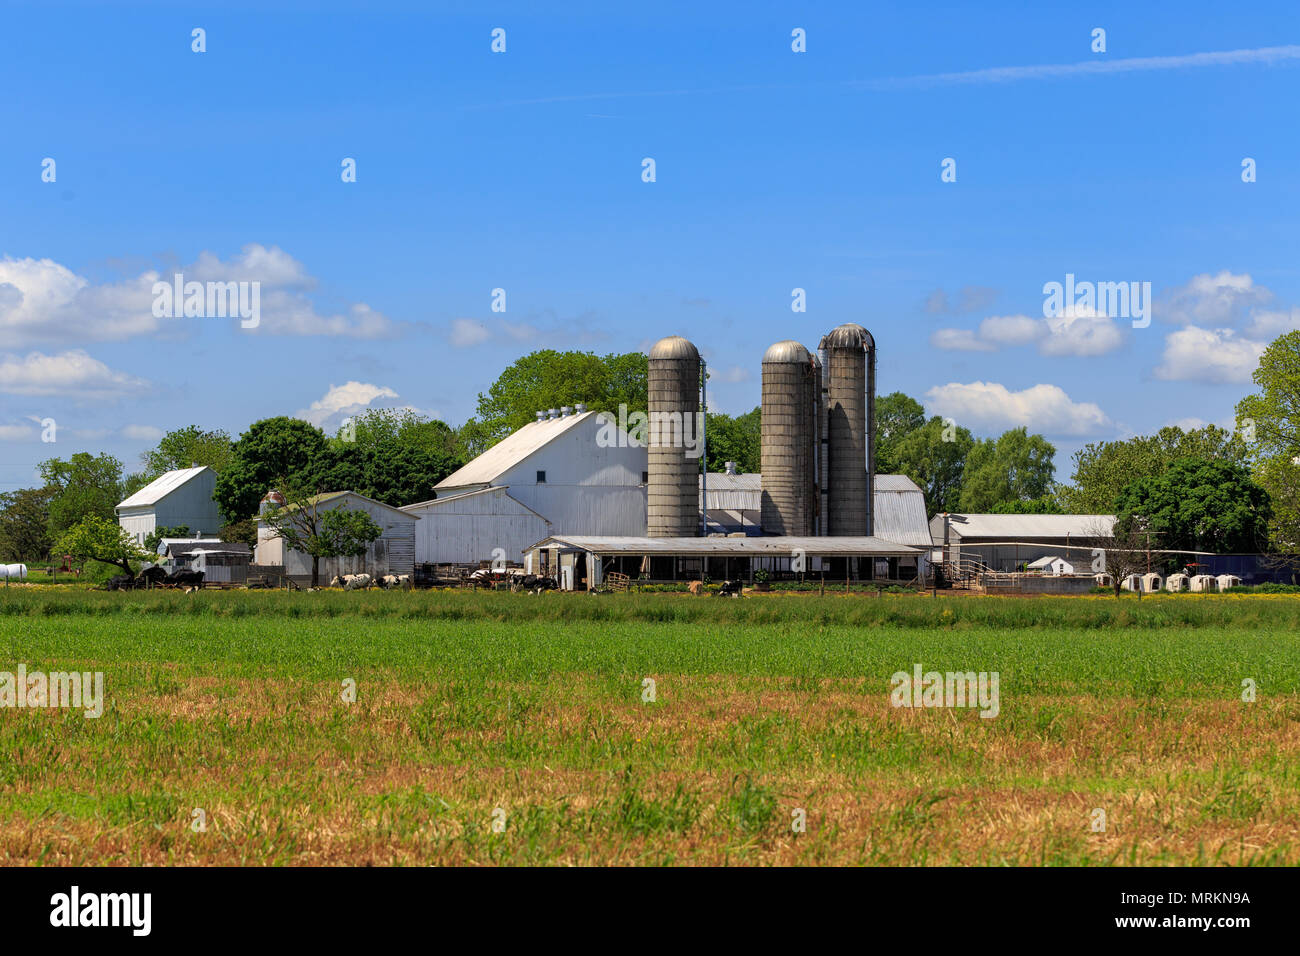 Ronks, PA, USA - May 23, 2018: A large and sprawling farm with barns on lancaster county, silver spring, new holland, nickel mines,